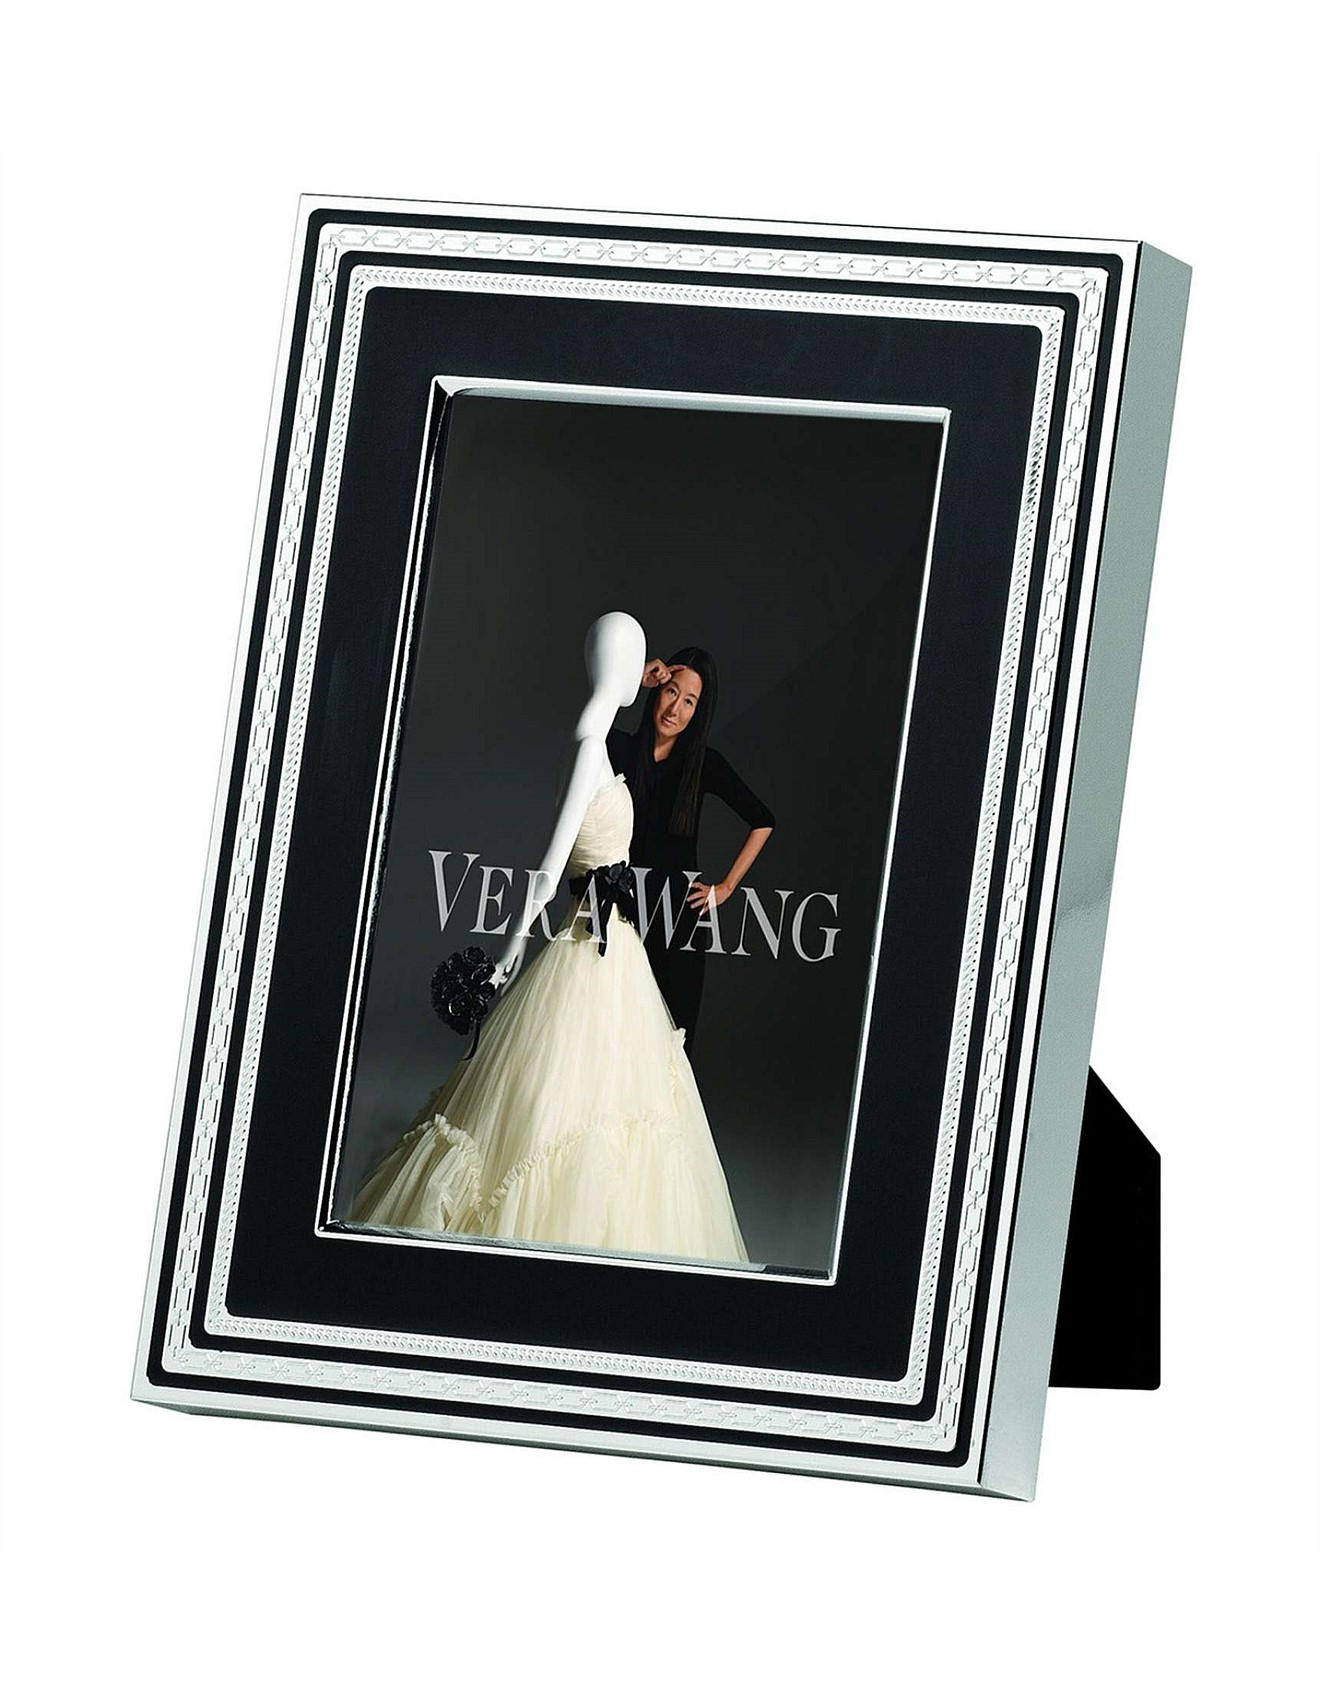 Photo Frames Albums Picture Frames Online David Jones Vera